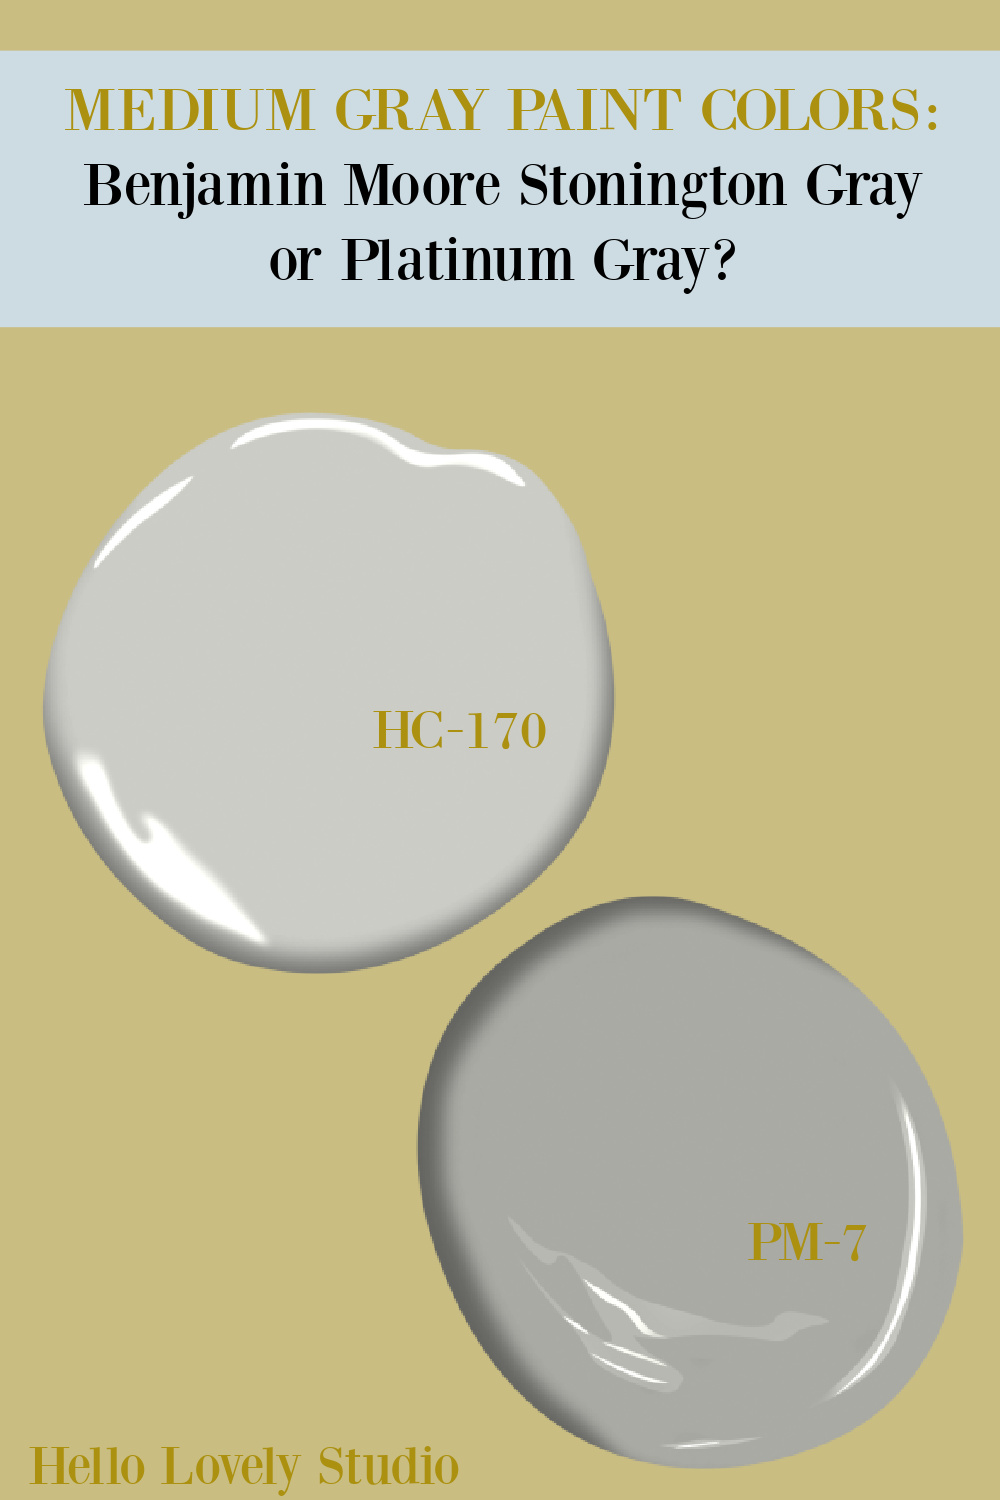 Benjamin Moore Stonington Gray or Platinum Gray? Get ideas for these medium gray paint colors on Hello Lovely. #paintcolors #graypaintcolors